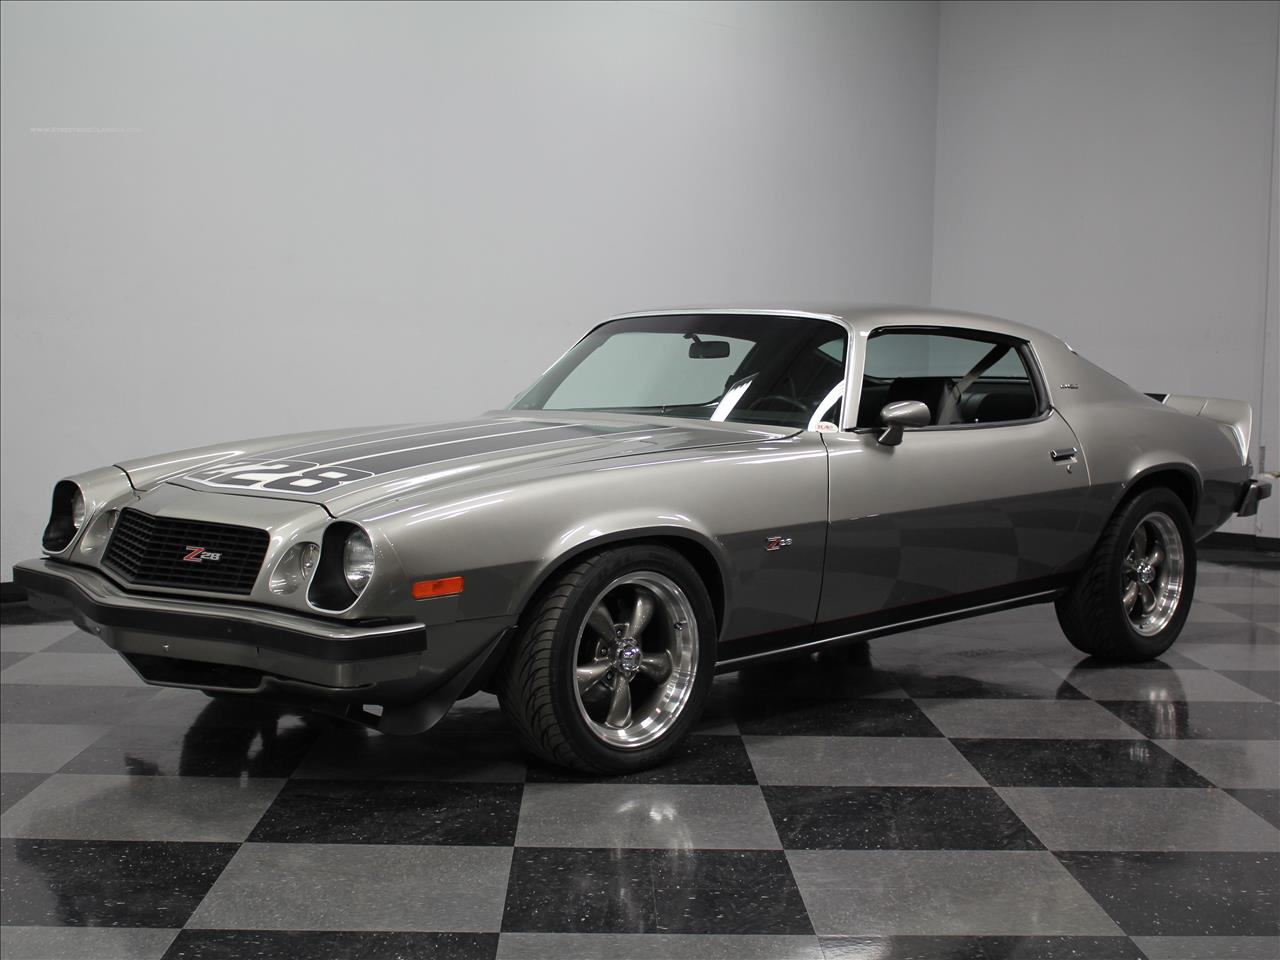 Used Cars Charlotte Nc >> 1974 Chevrolet Camaro for sale in Charlotte, NC